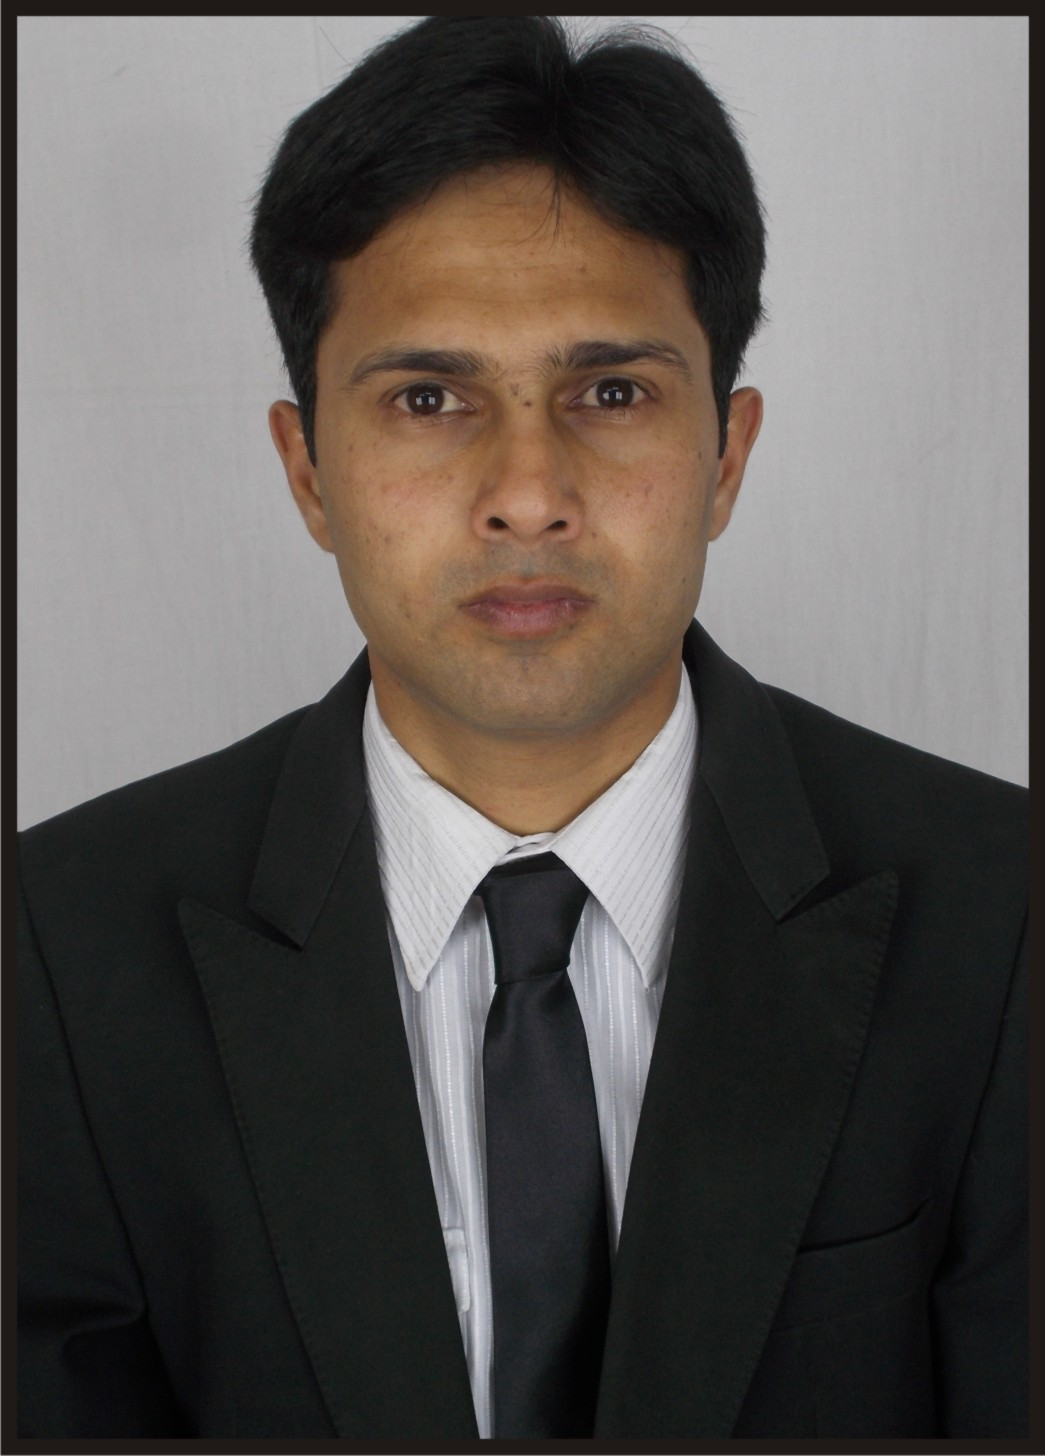 <b>Muntazir Abbas</b> Data Entry - 43916_1_76845